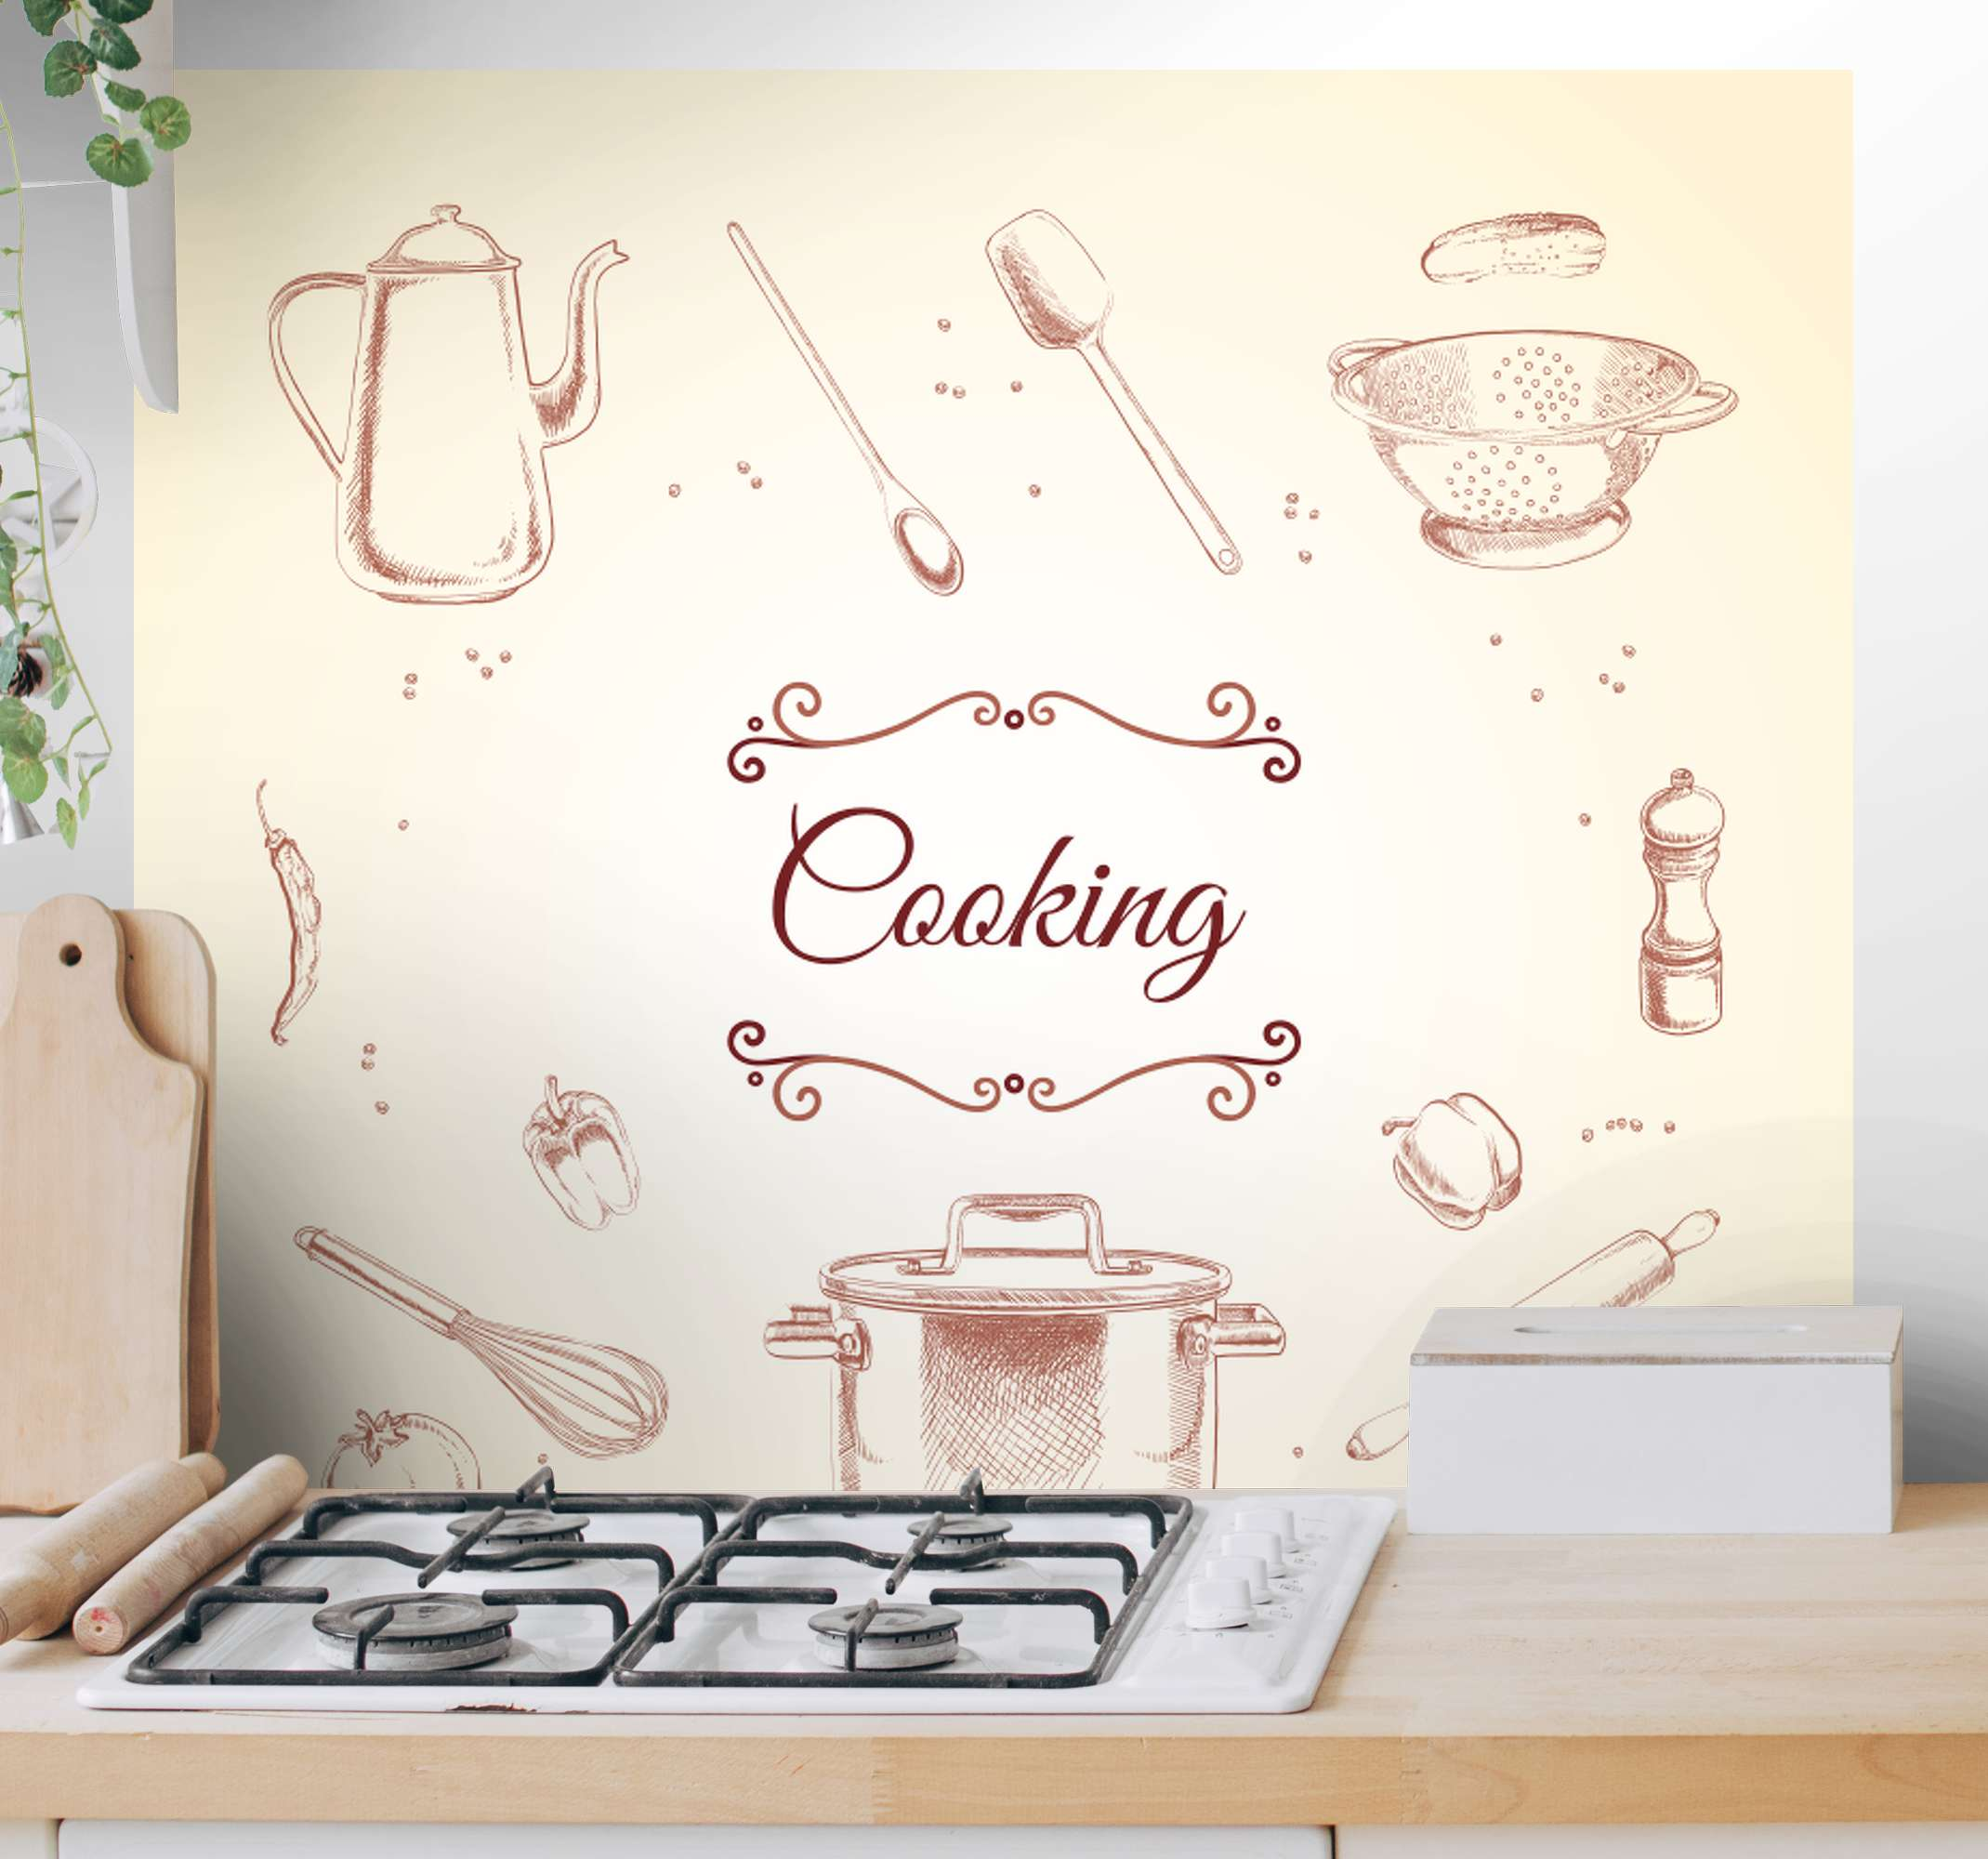 TenStickers. Rustic kitchen utensil rustic canvas wall art. Lovely and ideal kitchen canvas wall art decoration containing cooking utensils, spices and vegetable design illustrations.